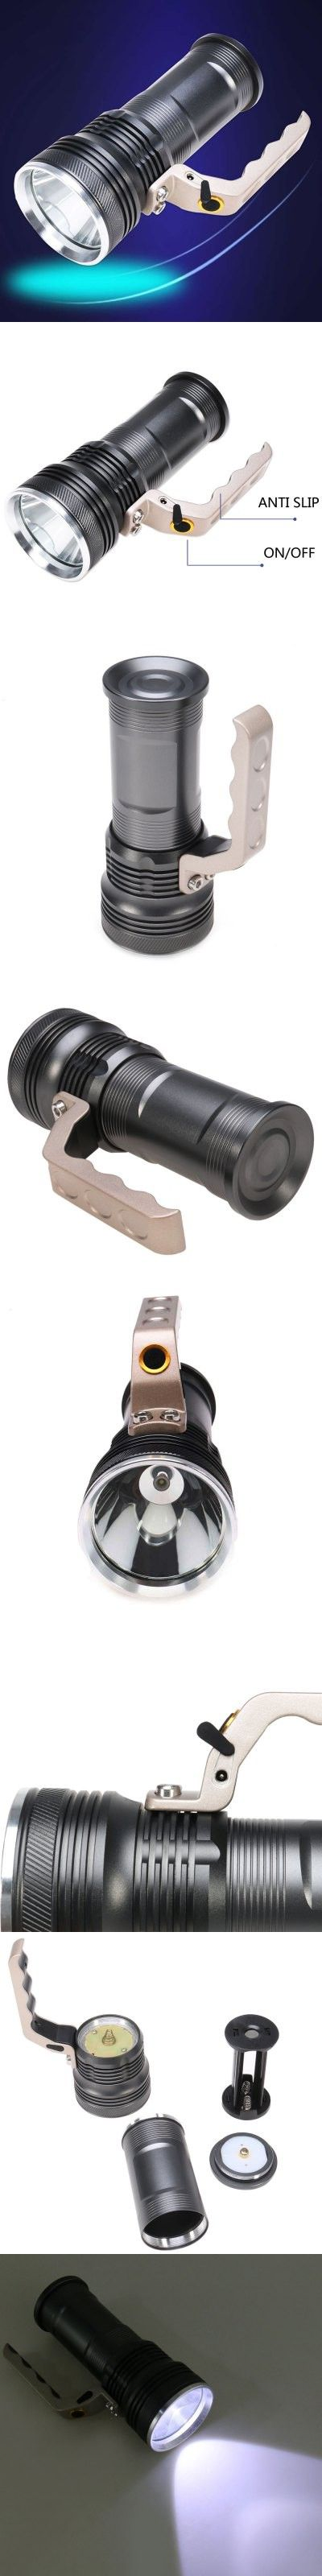 CREE XML T6 2000Lm Rechargeable LED Flashlight Torch